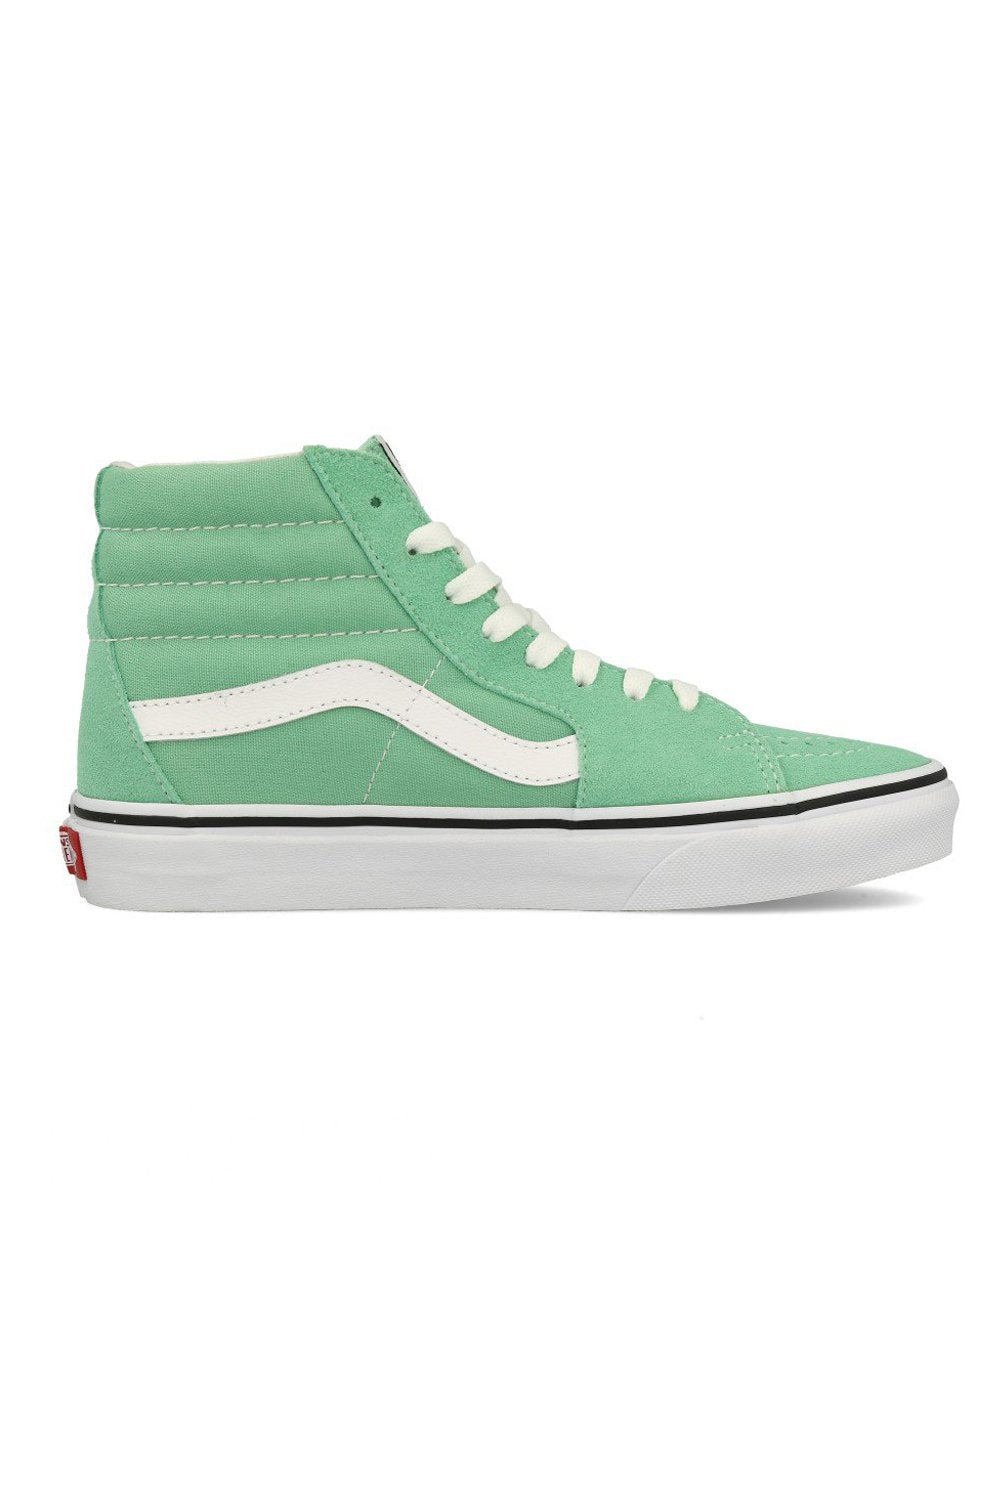 Vans SK8 Hi Neptune Green / True White Shoe